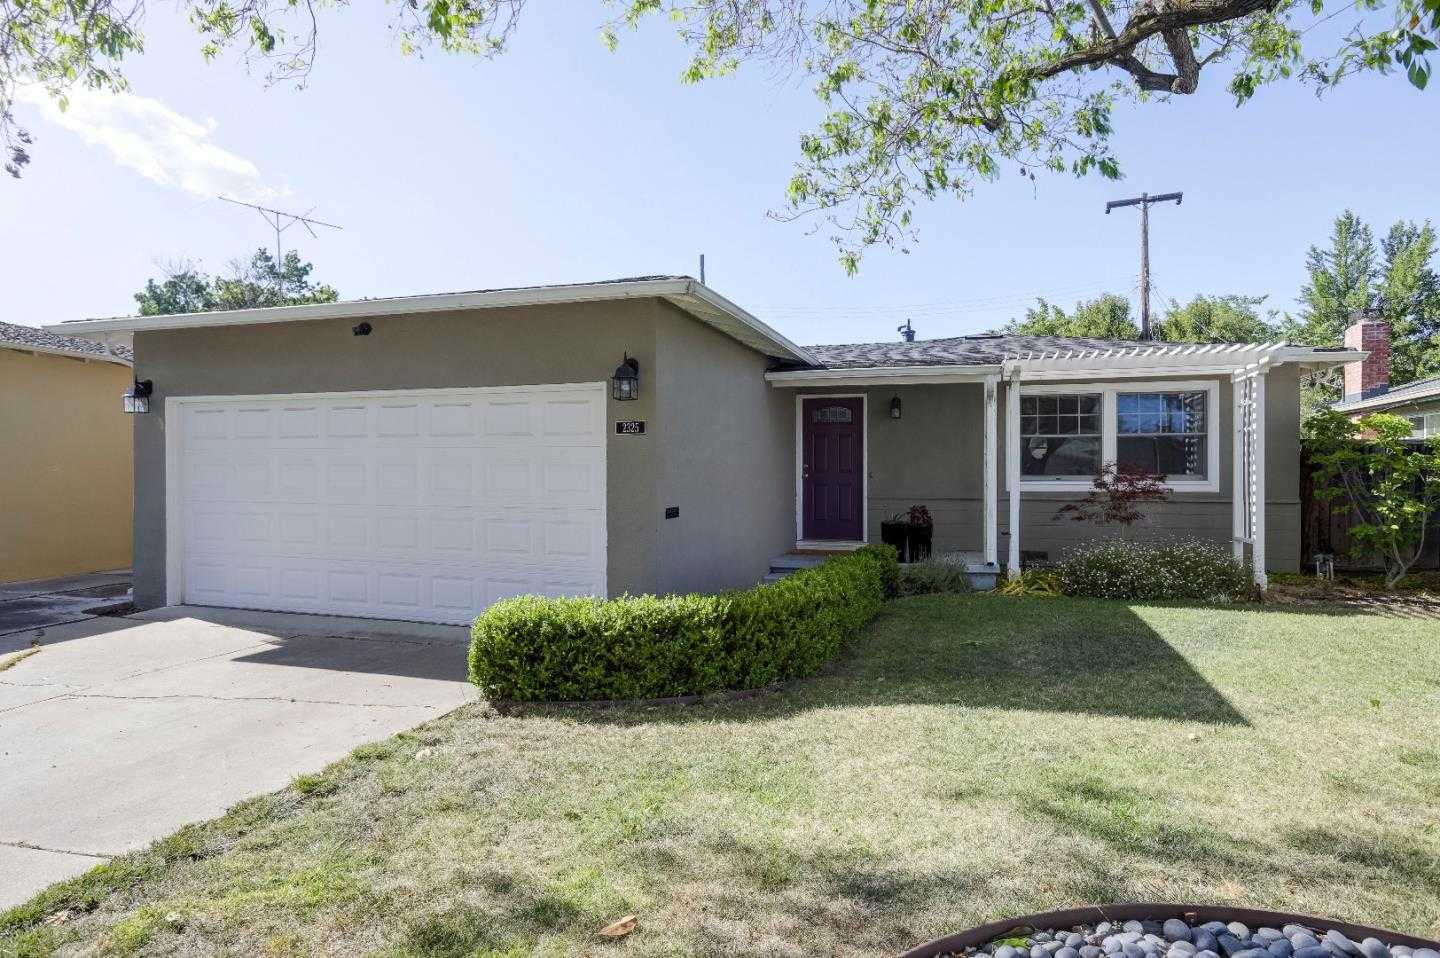 $1,399,988 - 3Br/2Ba -  for Sale in Santa Clara